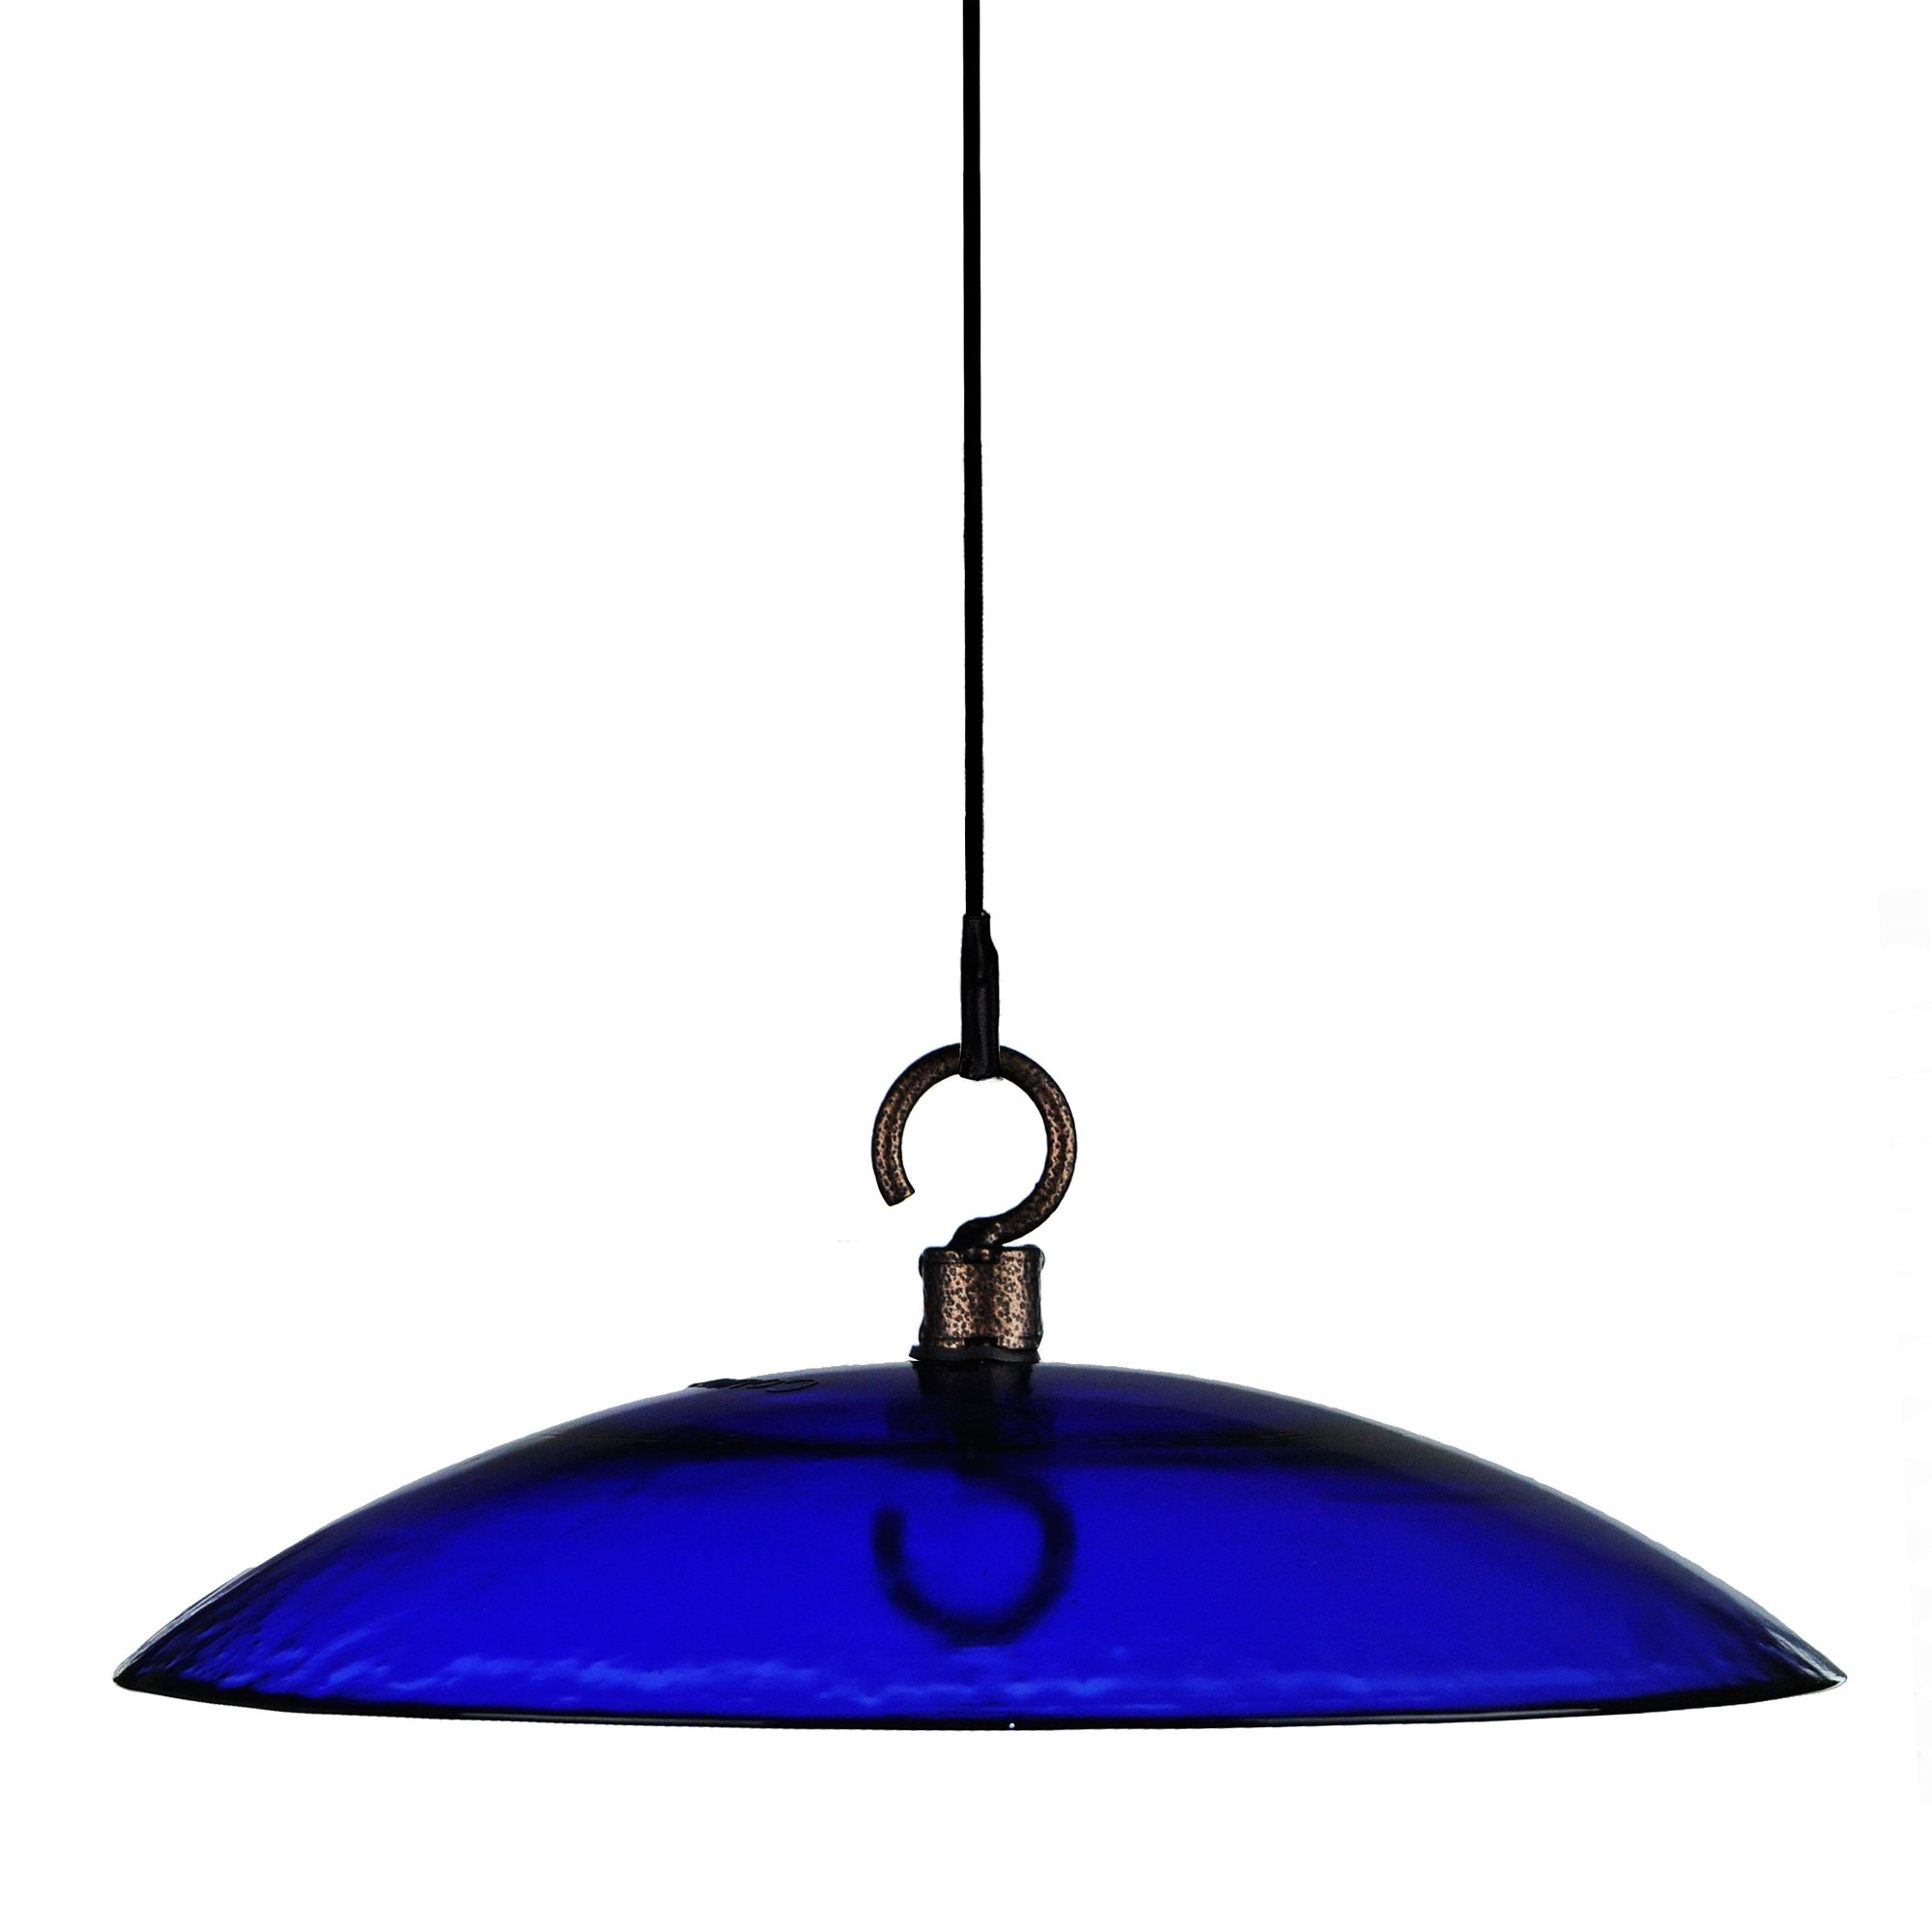 Mosaic Birds Cobalt Blue Petite Glass Baffle Dome, M383-200-15, 11 inches Wide, Co